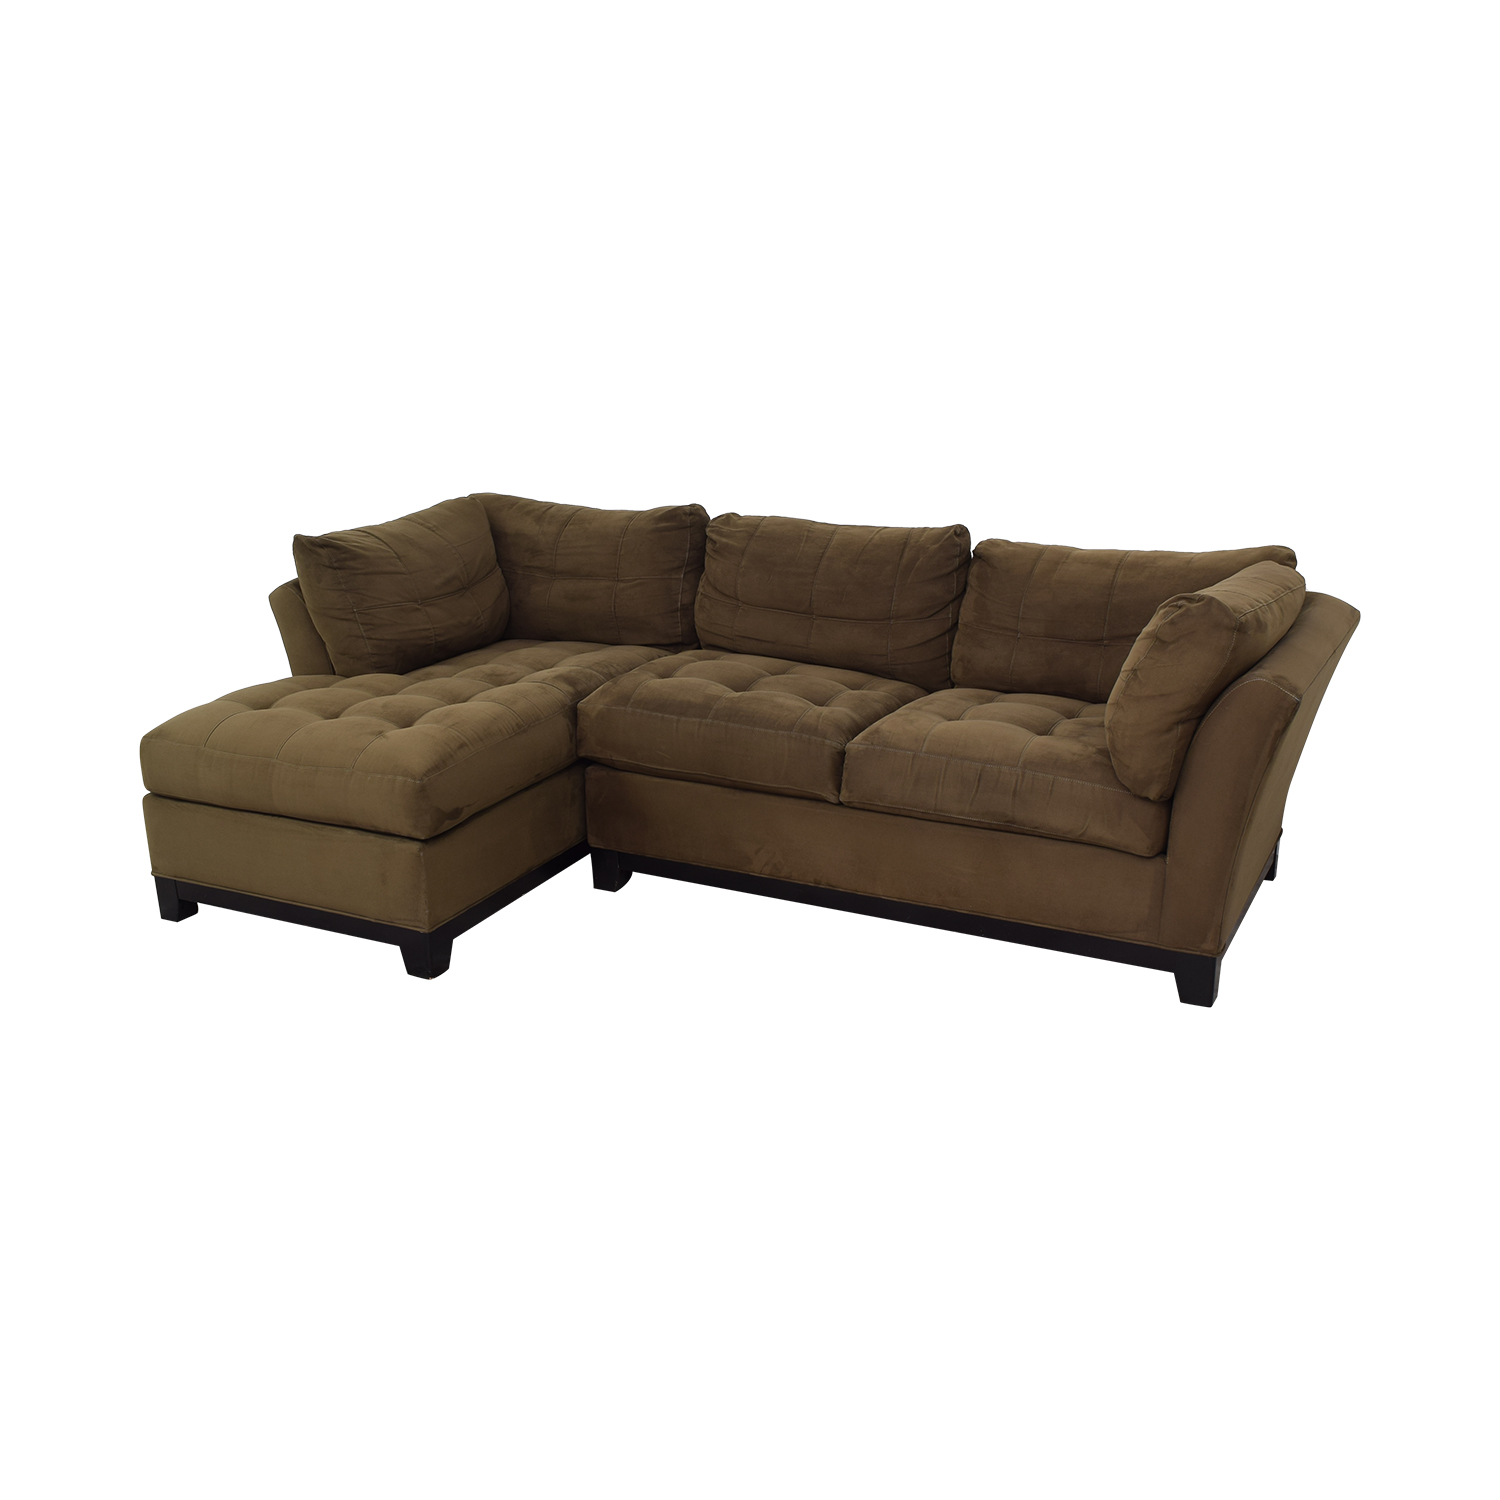 Cindy Crawford Home Cindy Crawford Home Metropolis Sectional Sofa dimensions